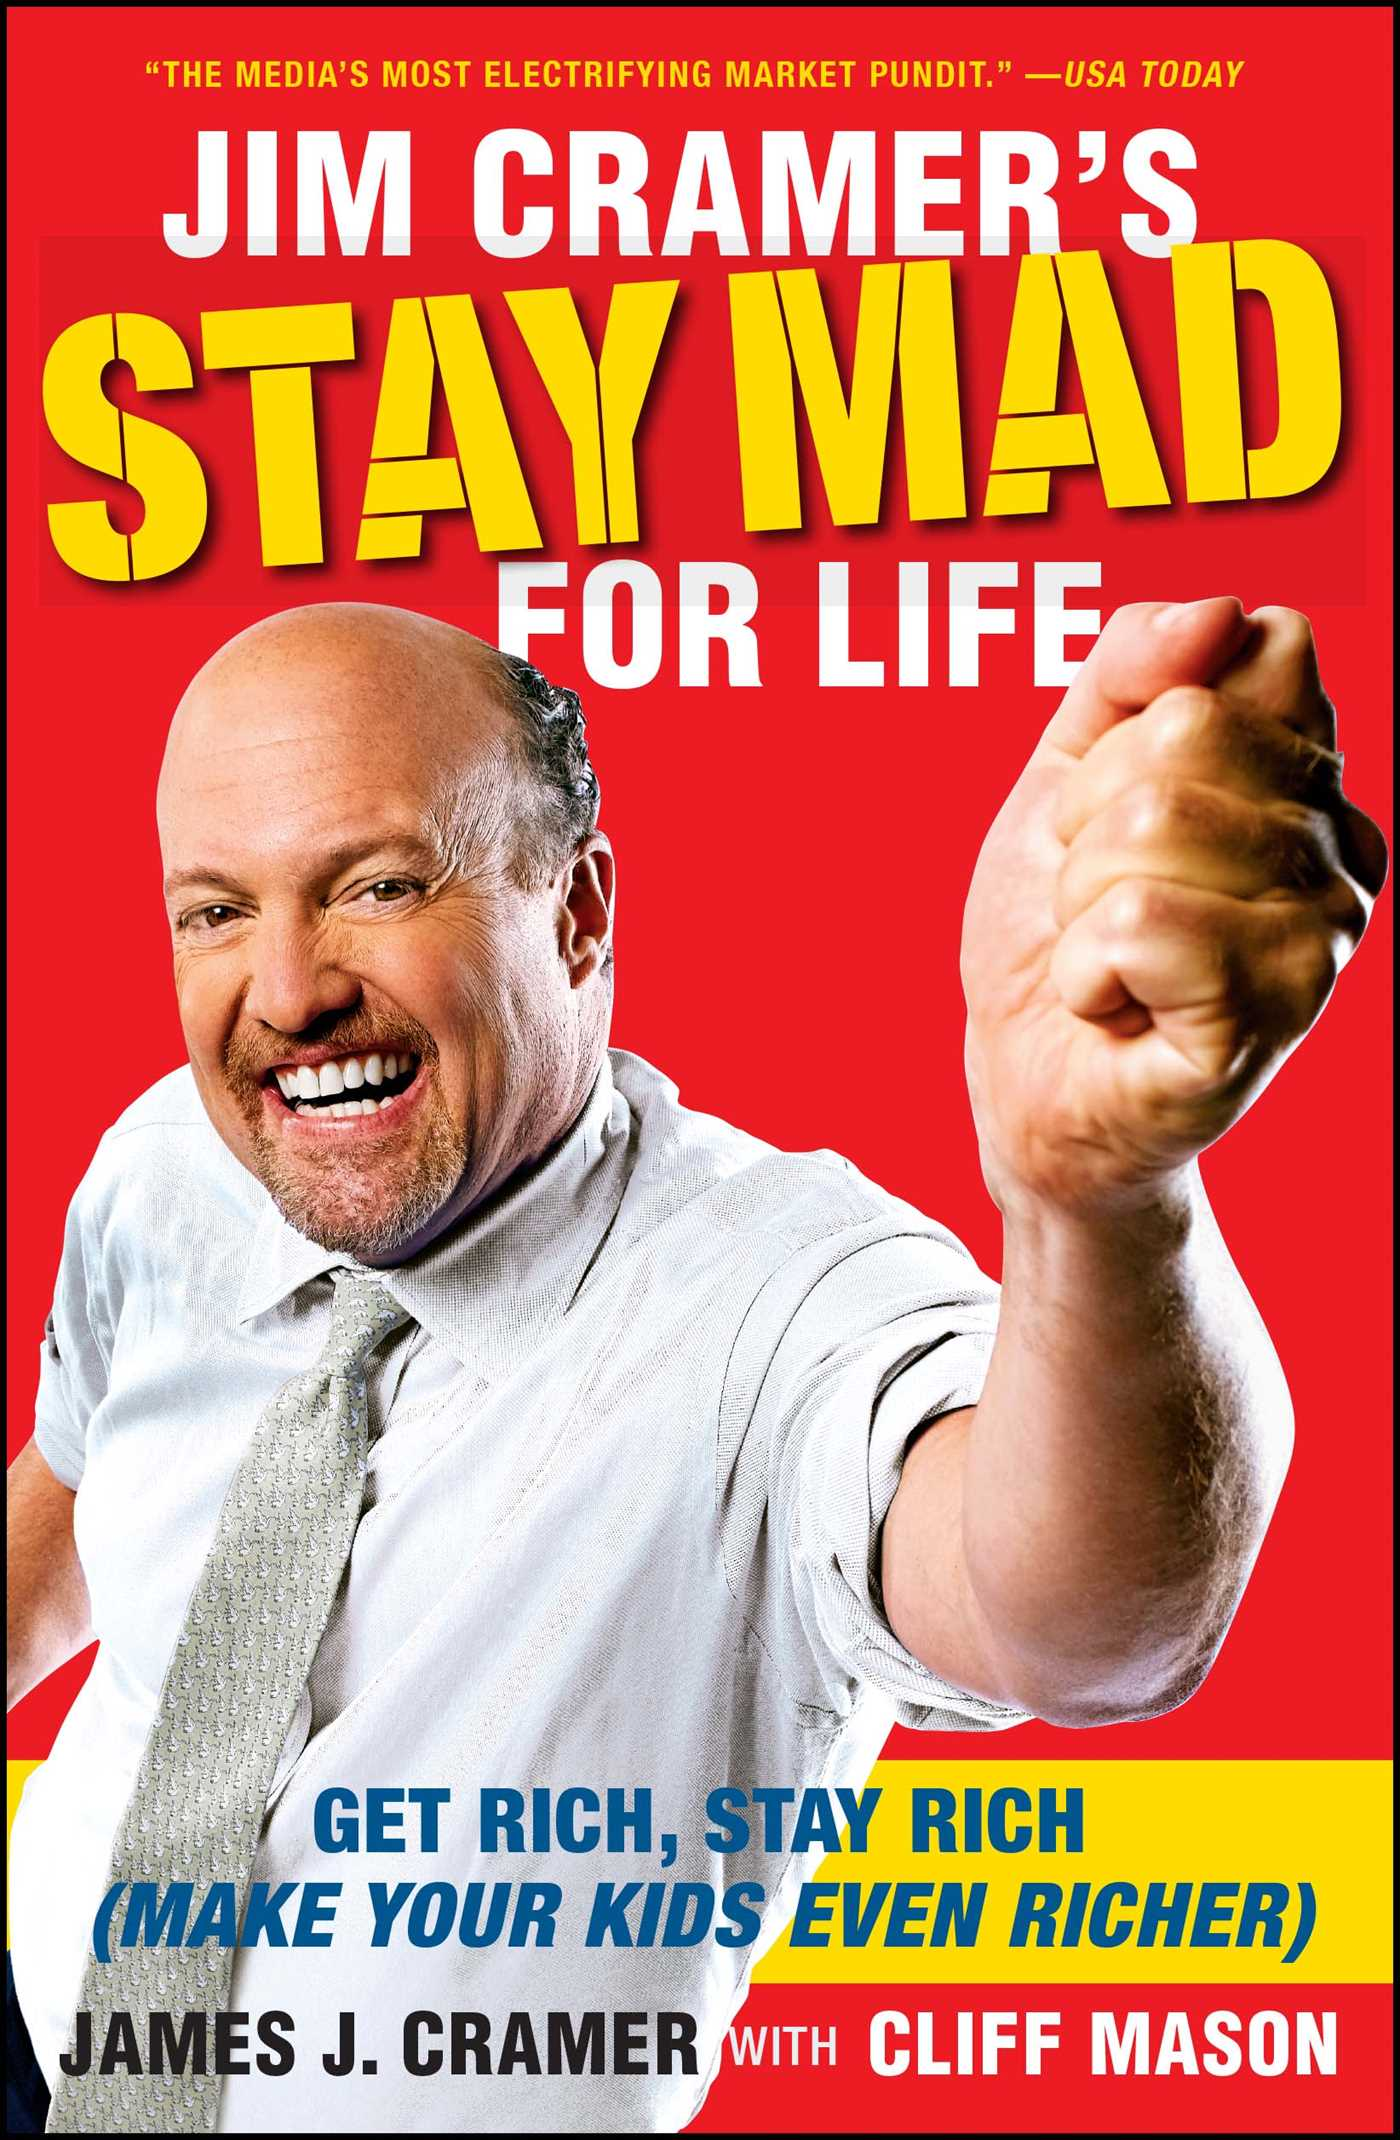 Jim cramers stay mad for life 9781416561415 hr